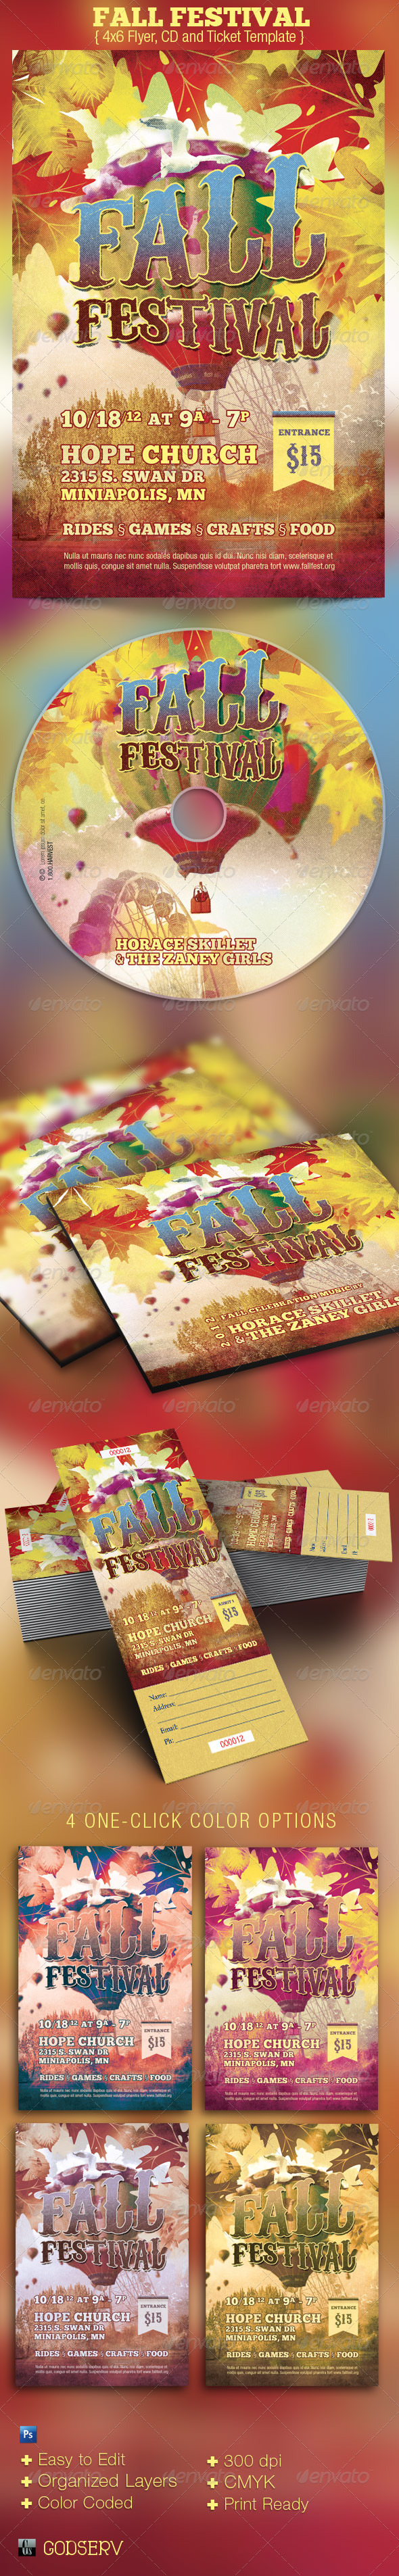 Fall Festival Church Flyer, CD and Ticket Template - Church Flyers